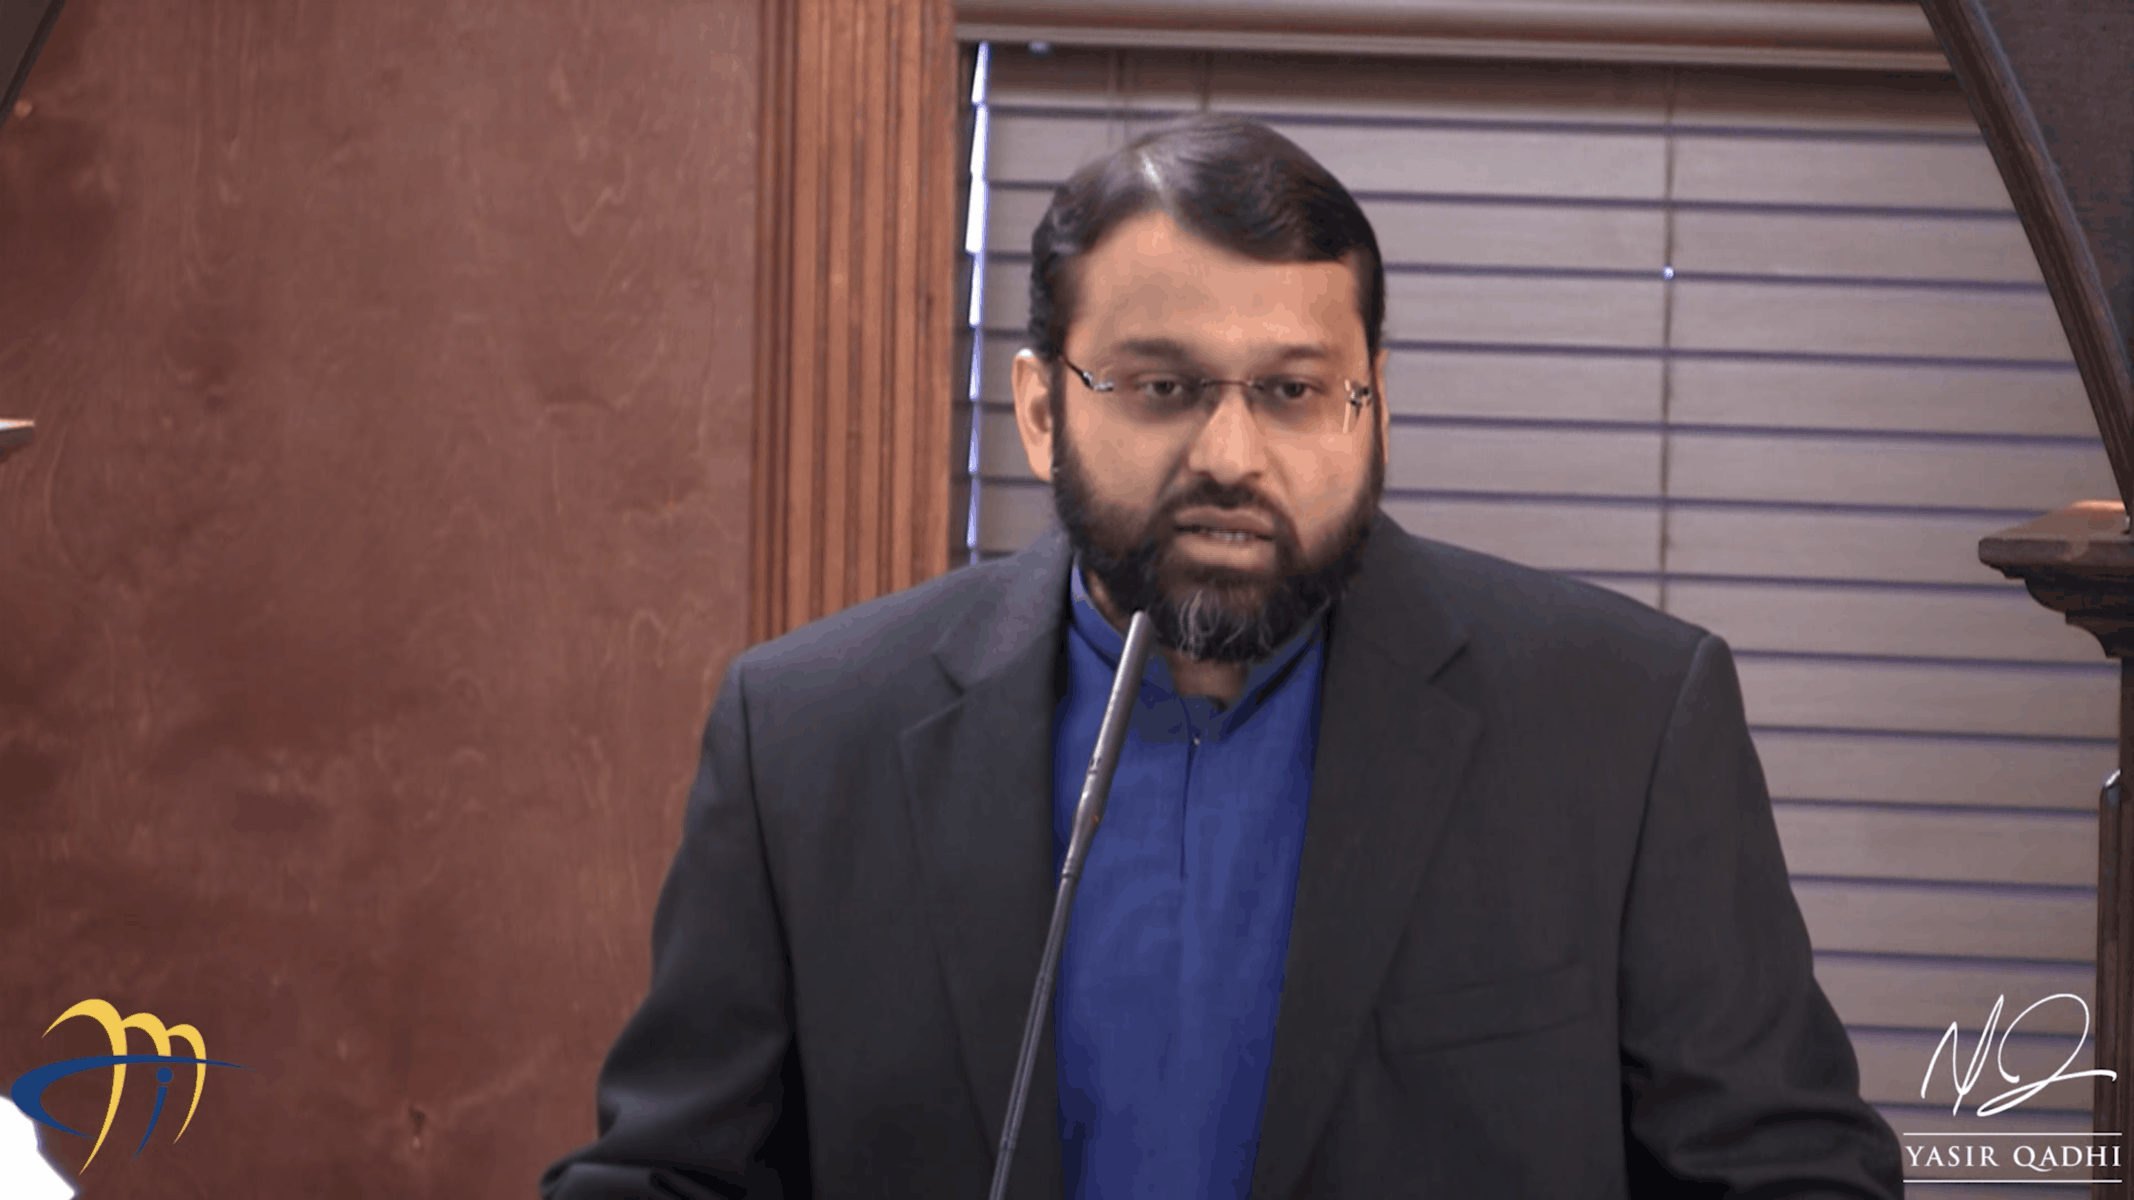 Yasir Qadhi – Thoughts on New Zealand Mosque Shooting